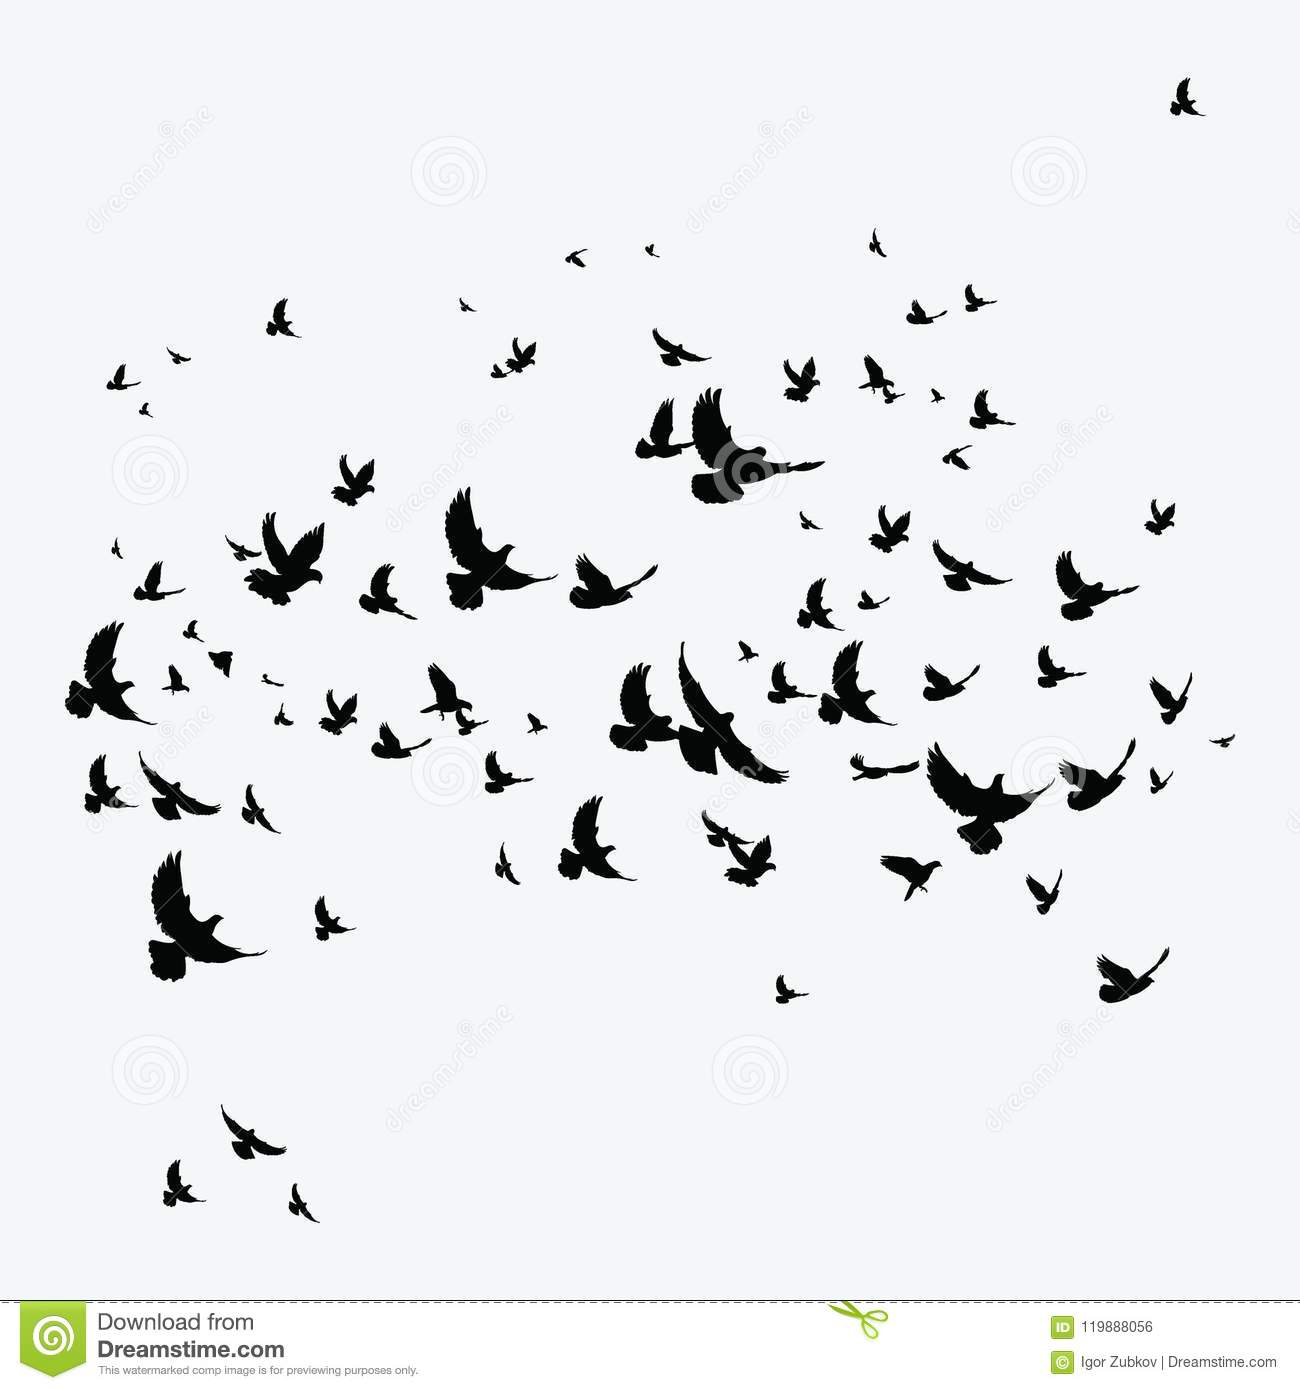 Silhouette Of A Flock Of Birds. Black Contours Of Flying